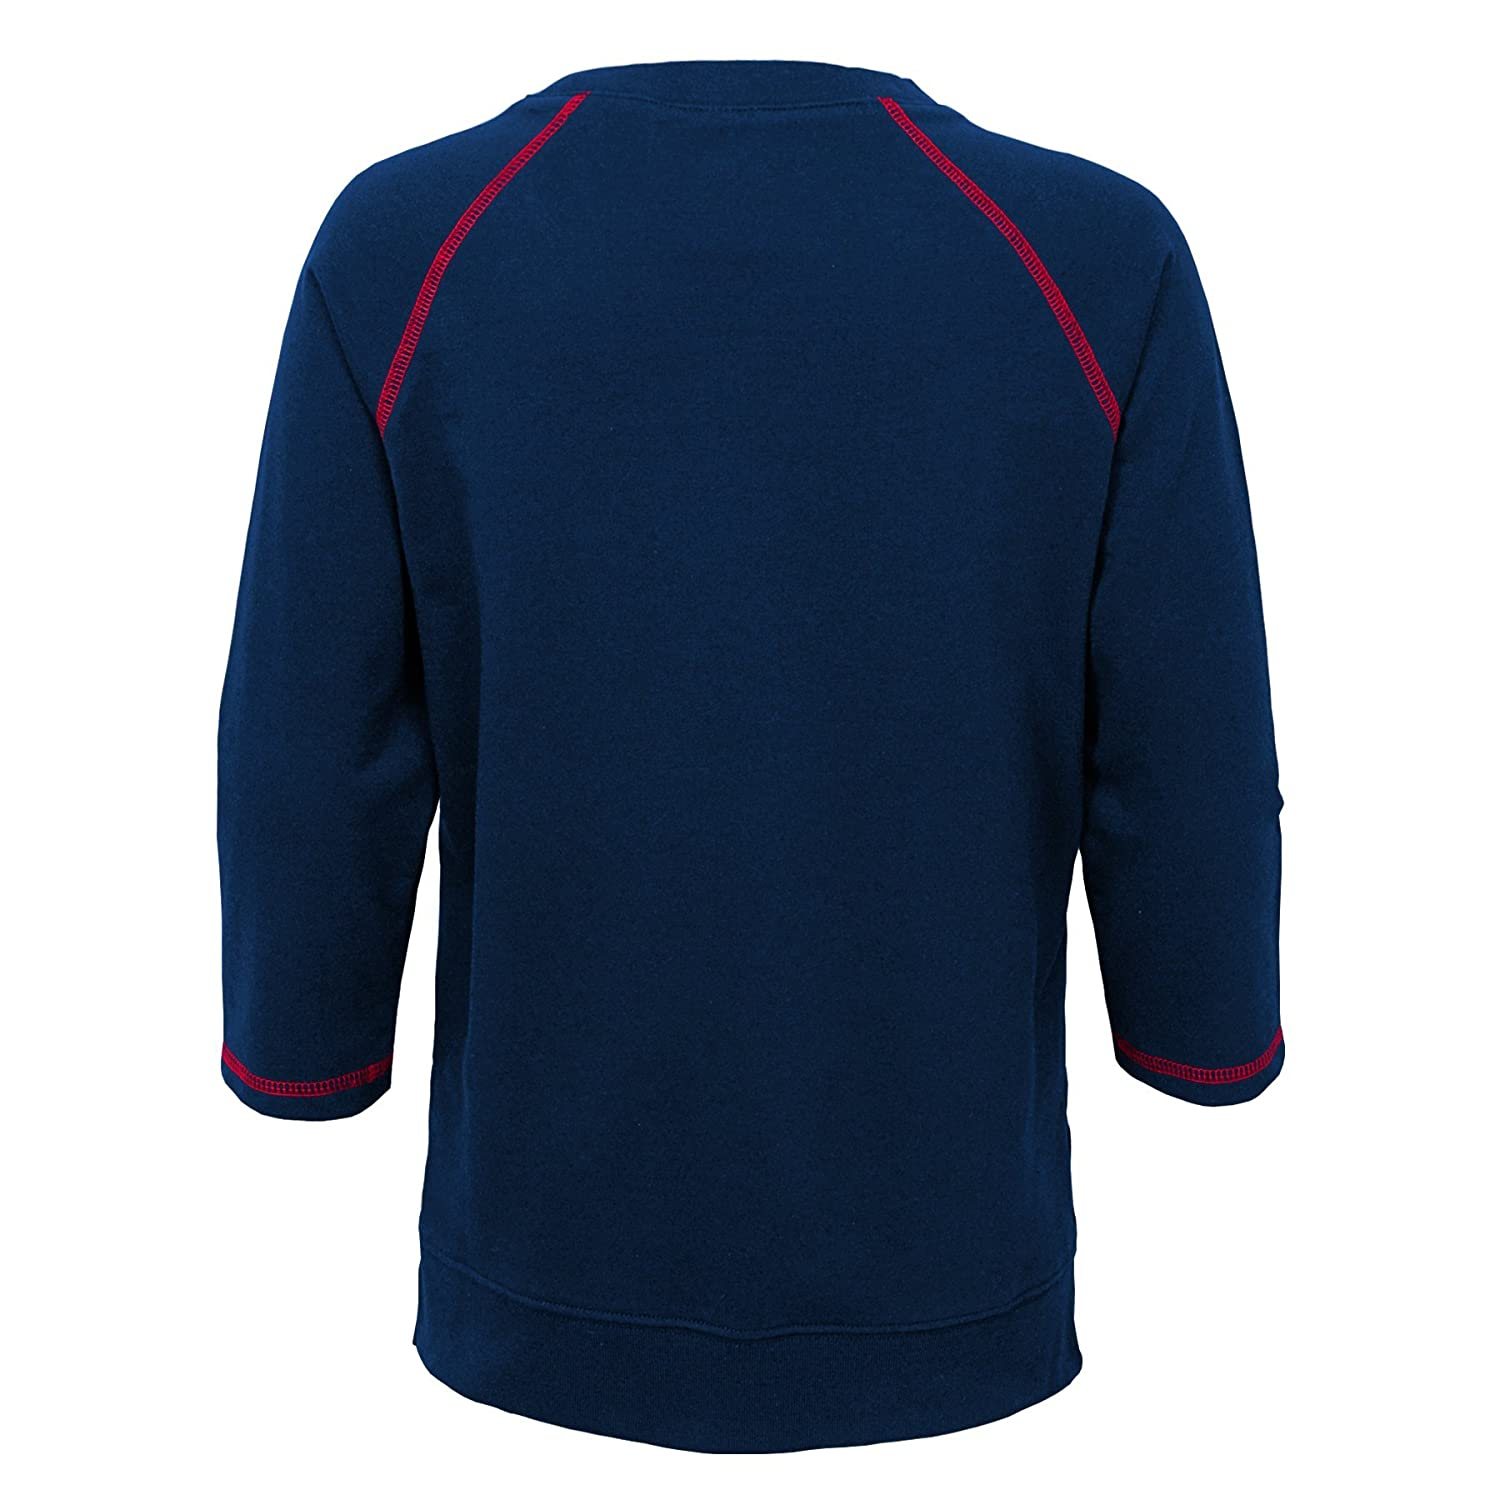 NFL New England Patriots Youth Boys Overthrow Pullover Top Dark Navy 14 Youth Large